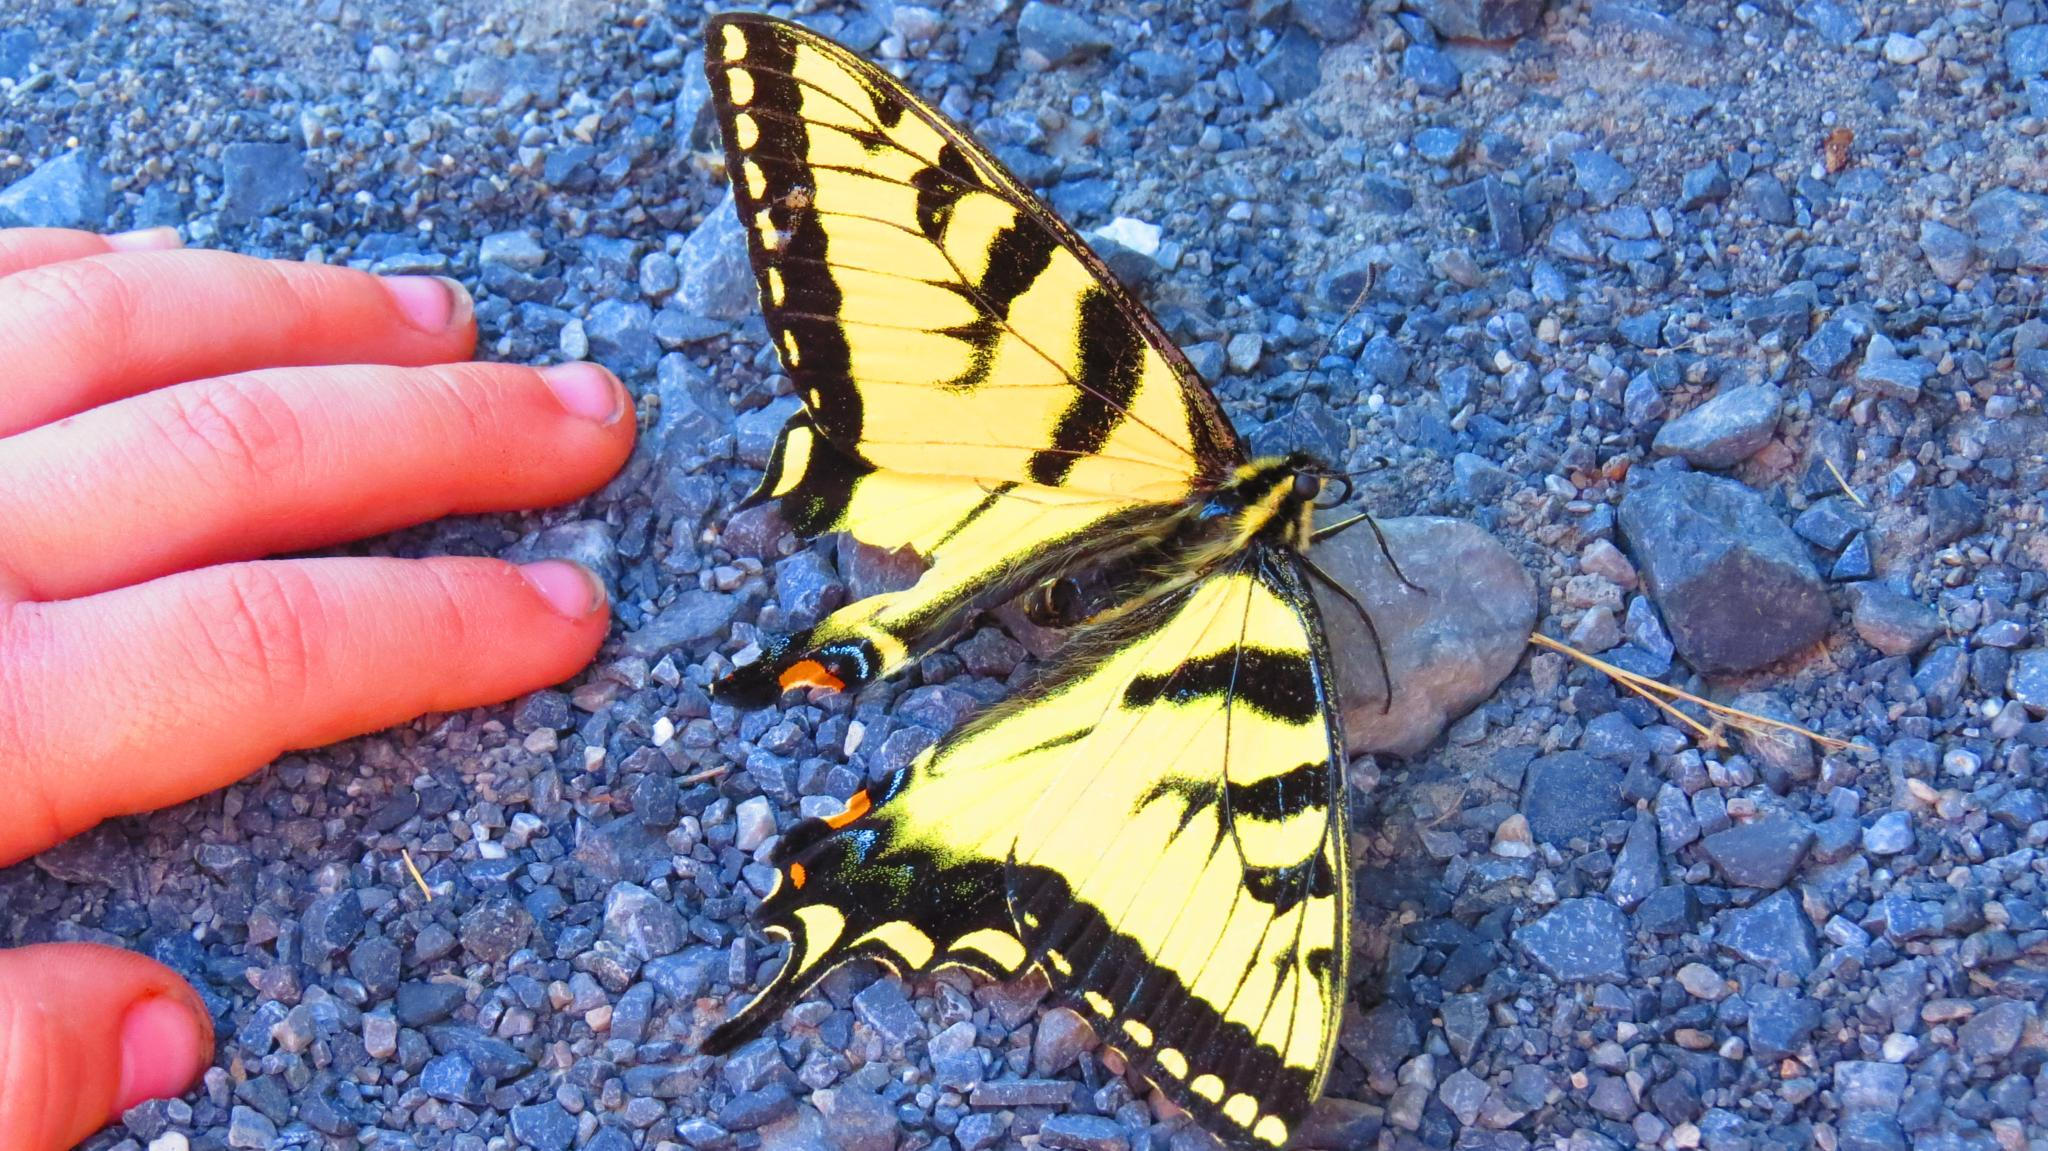 Butterly and a boy by Becky Krug